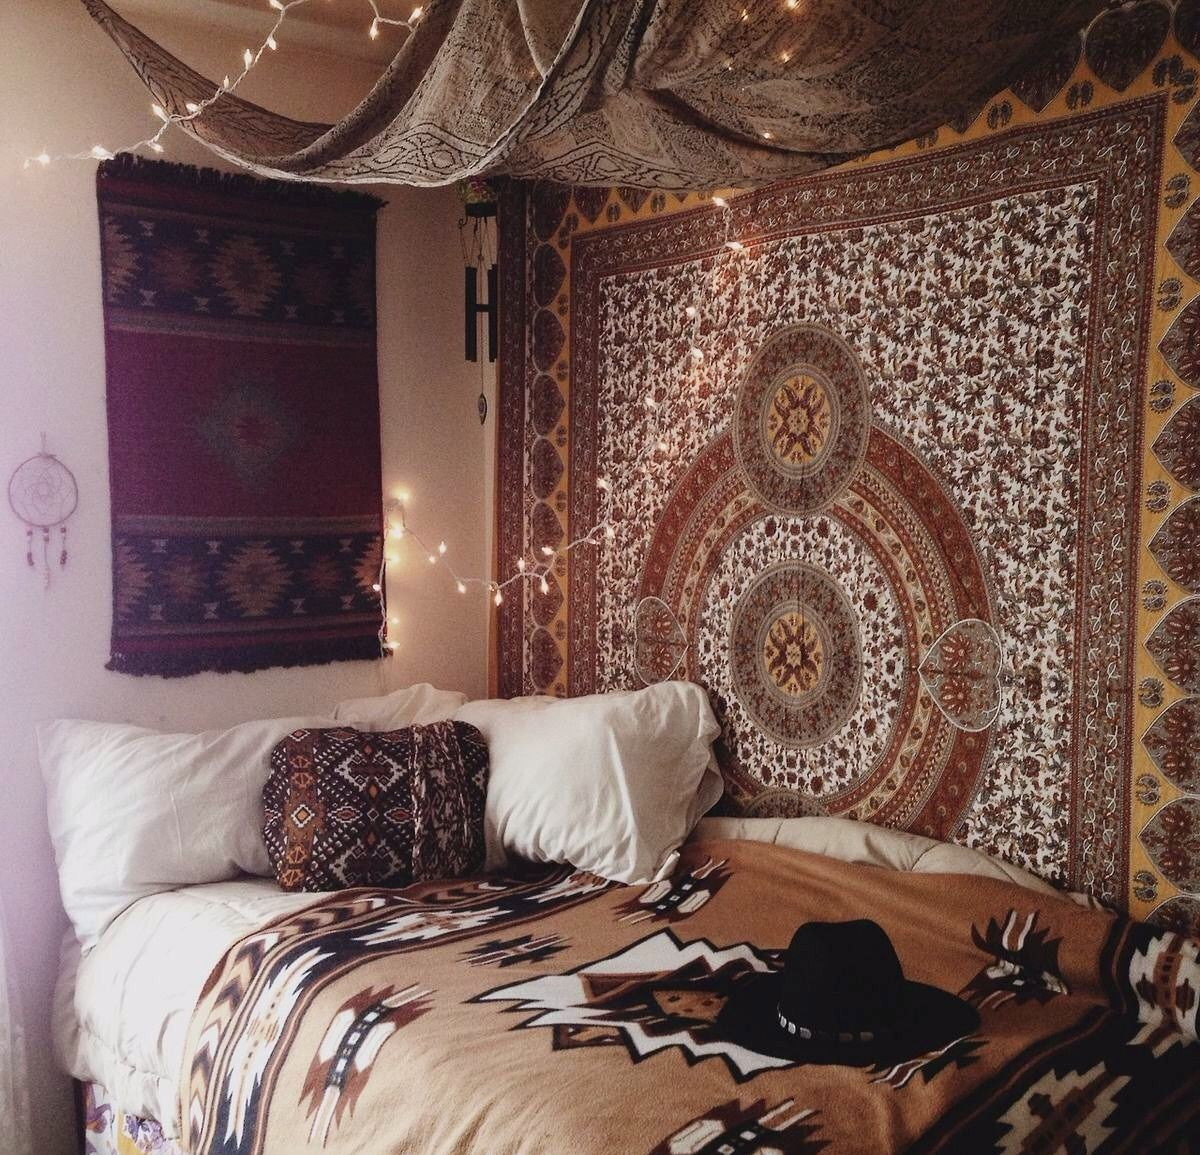 Boho Bedding Tumblr My Bohemian Room